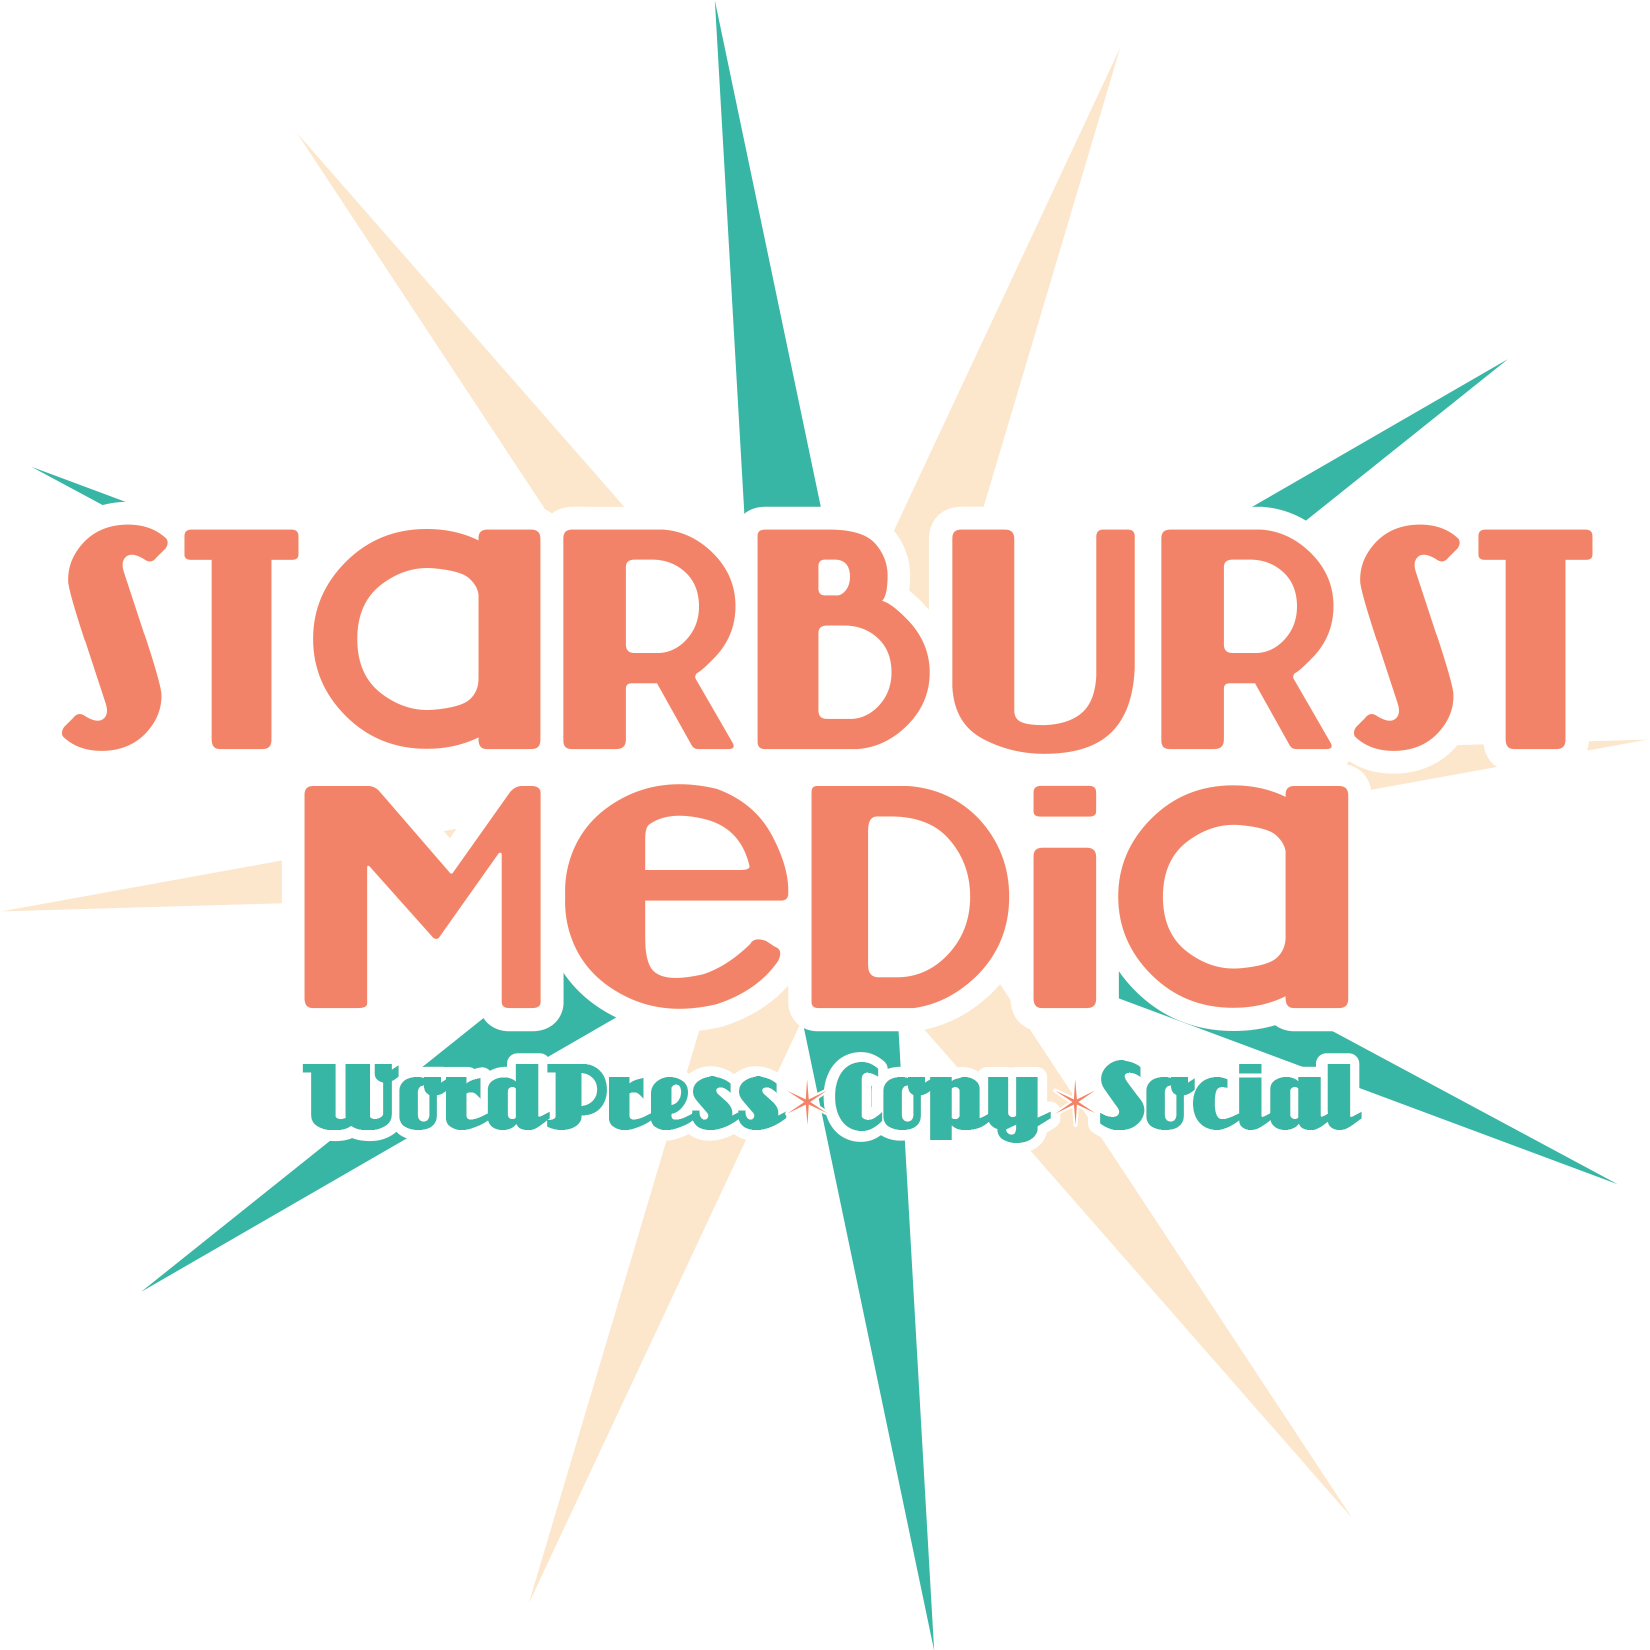 Starburst Media Vertical Logo